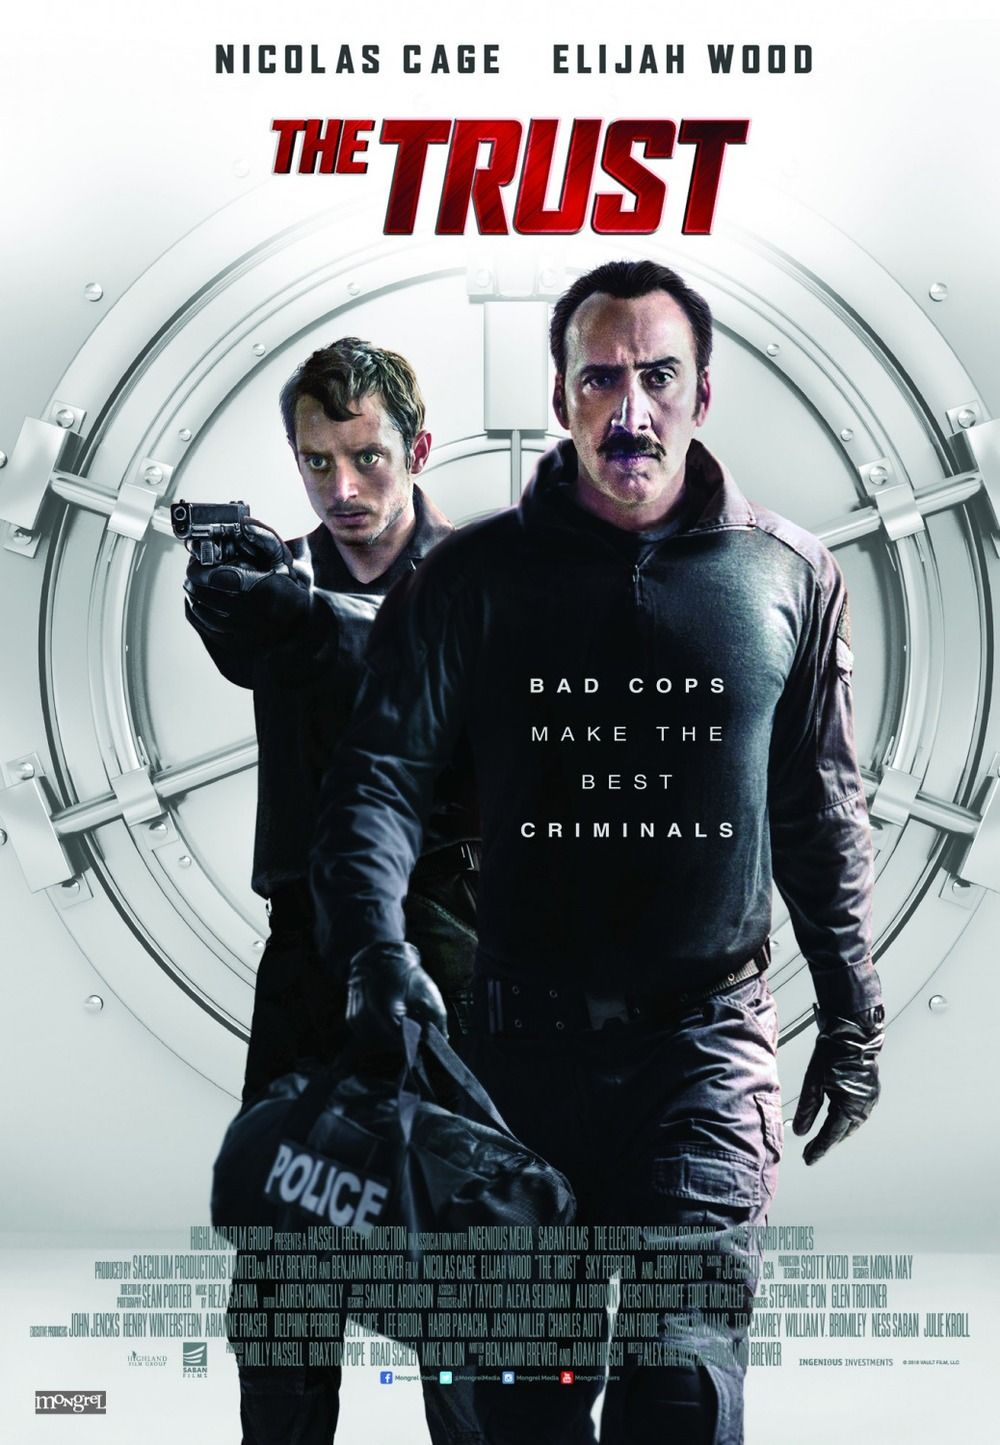 The Trust Blu ray, Nicolas cage, Video on demand